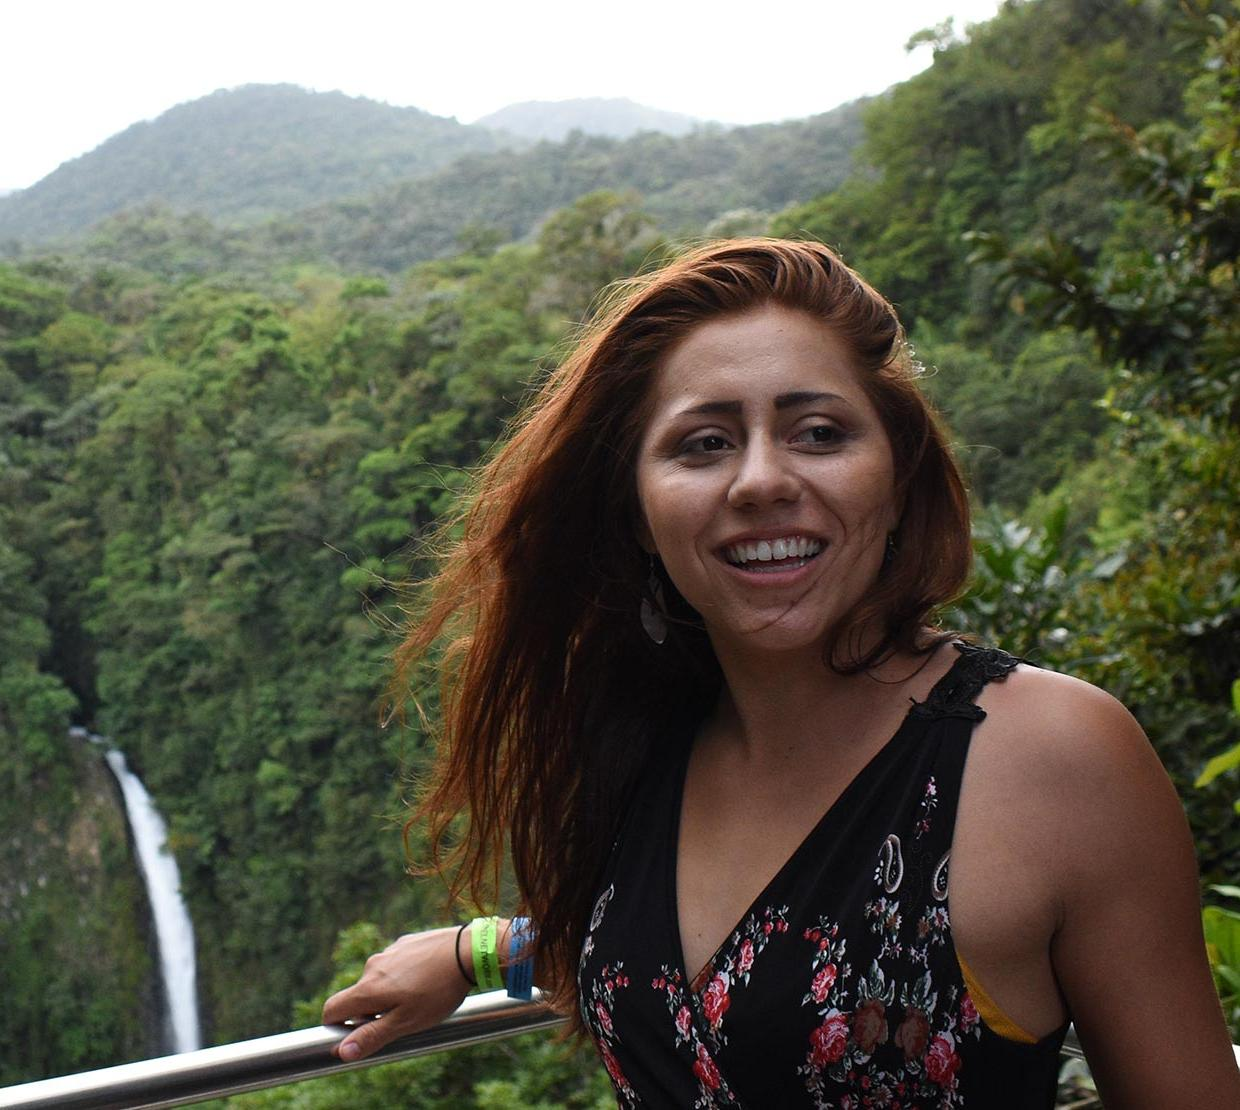 Tonya Allison standing in front of waterfall and forest